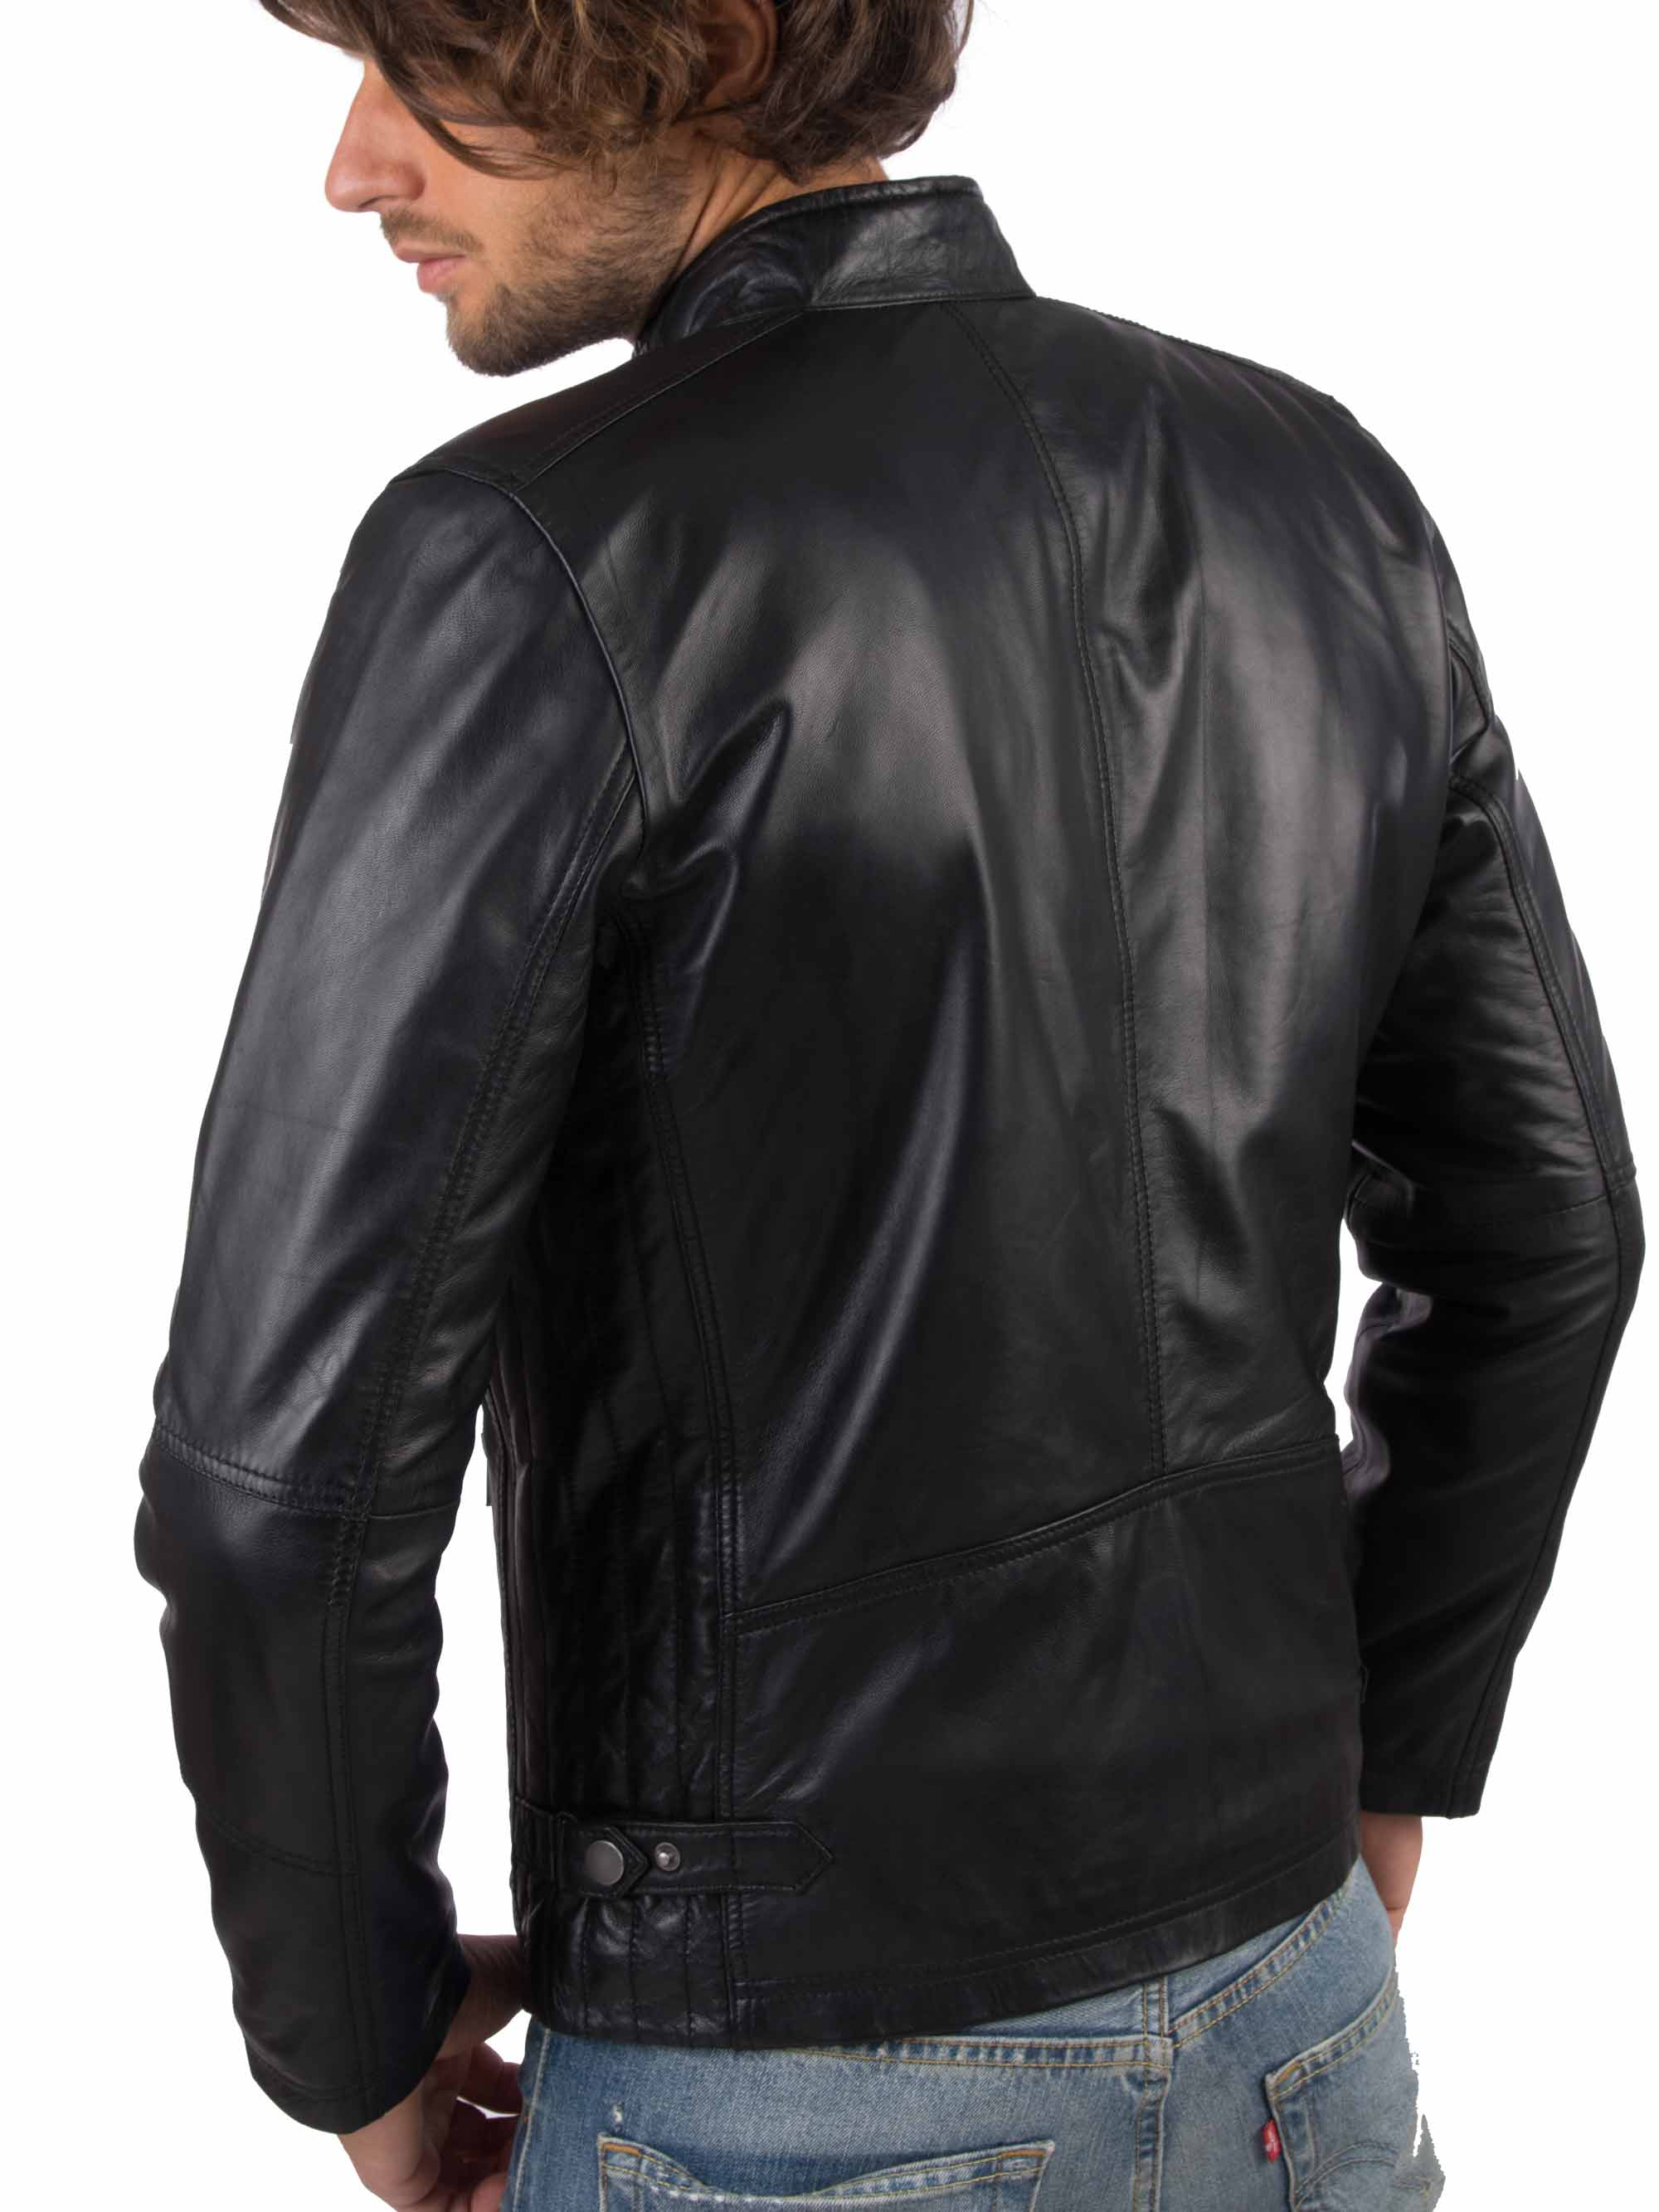 H973a712e84234f6cb6d2923499b4ade5Y VAINAS European Brand Mens Genuine Leather jacket for men Winter Real sheep leather jacket Motorcycle jackets Biker jackets Alfa